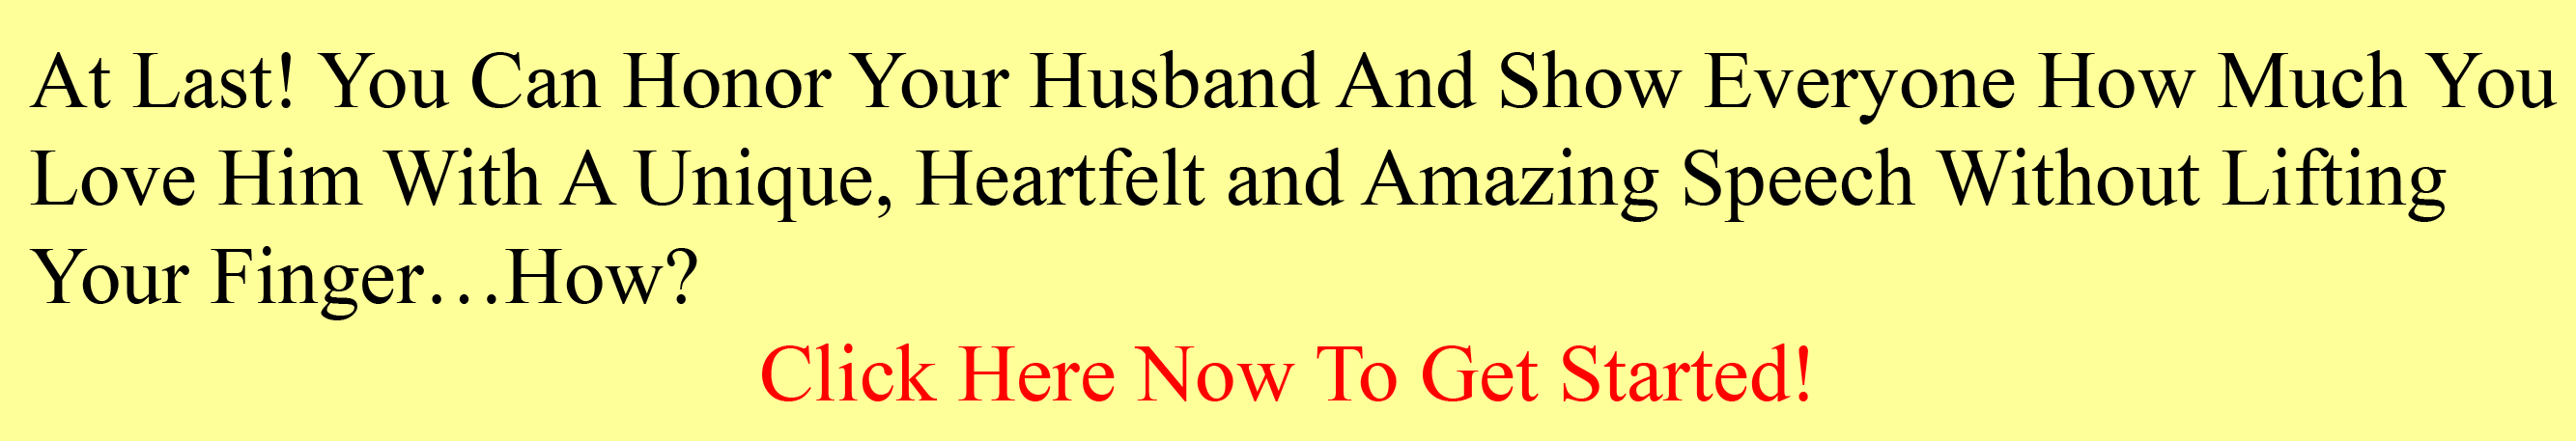 Sample Wedding Marriage Anniversary Speech For Husband From A Wife